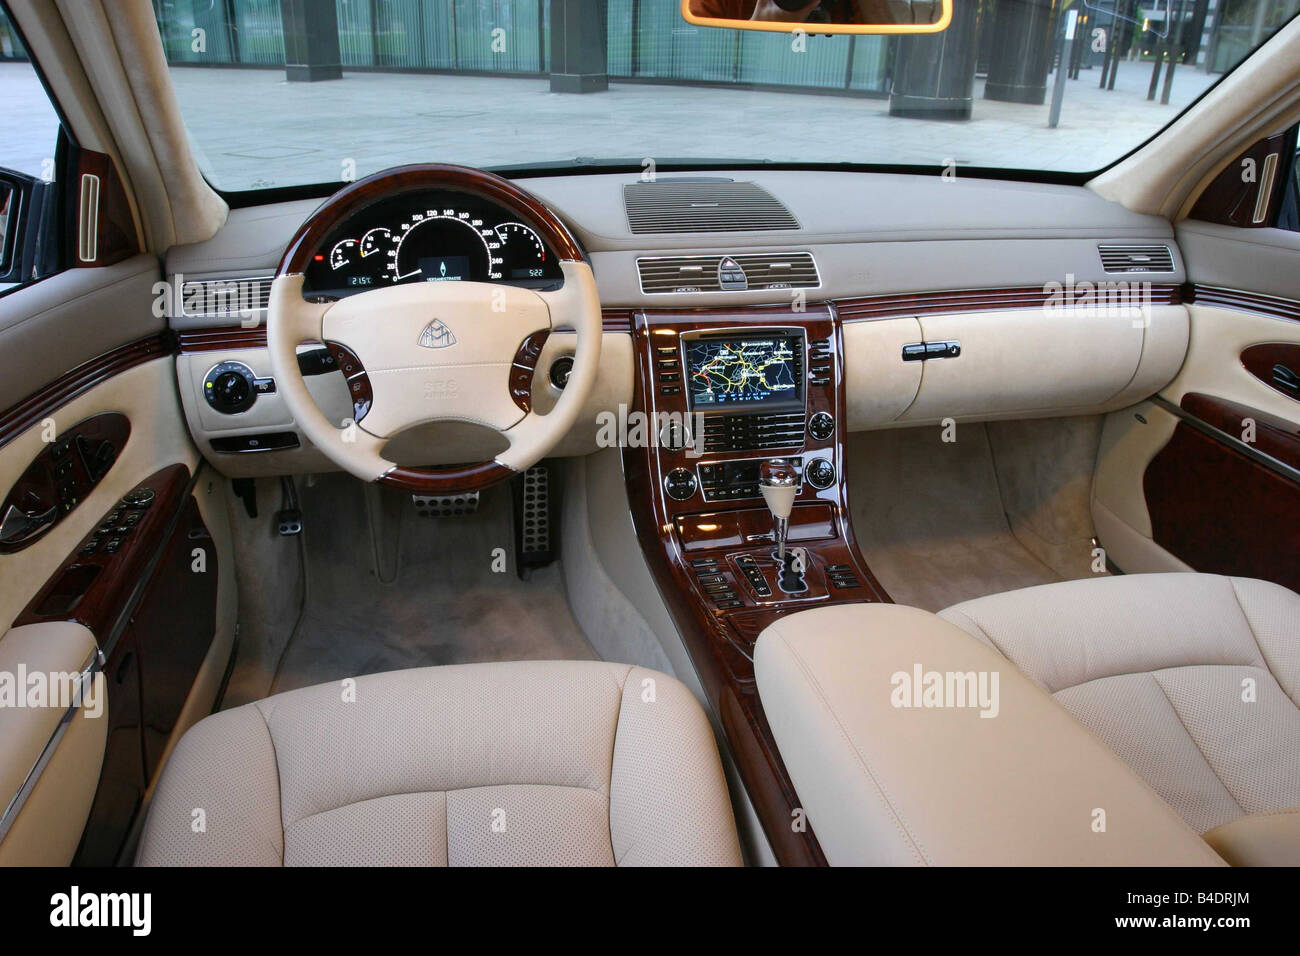 car mercedes maybach 62 luxury approx s black model year 2003 stock photo 19972924 alamy. Black Bedroom Furniture Sets. Home Design Ideas